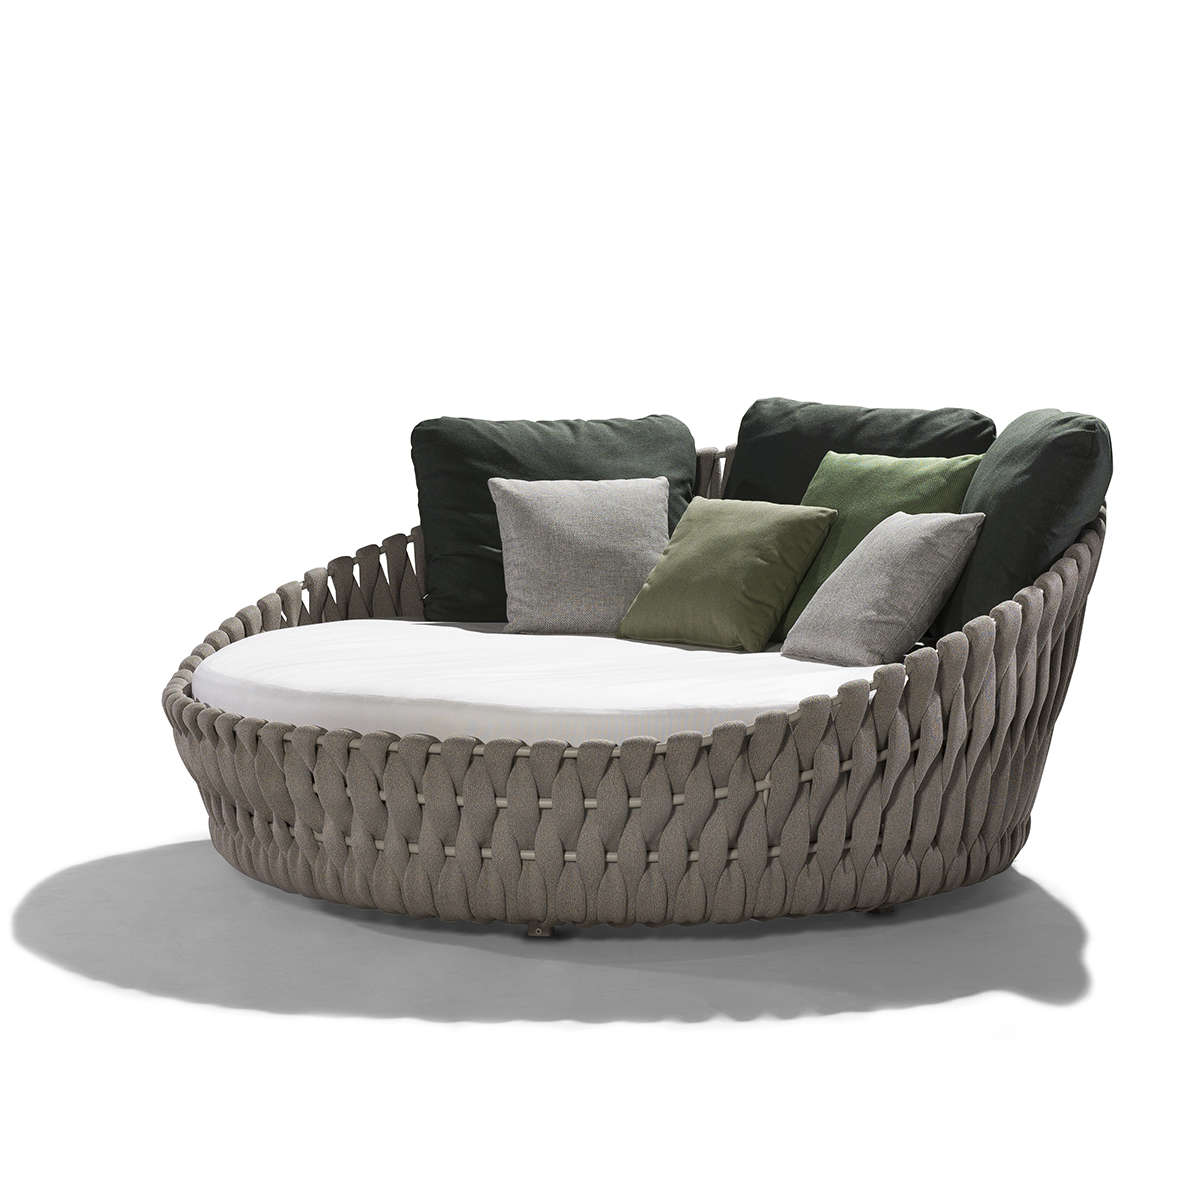 Tosca Daybed